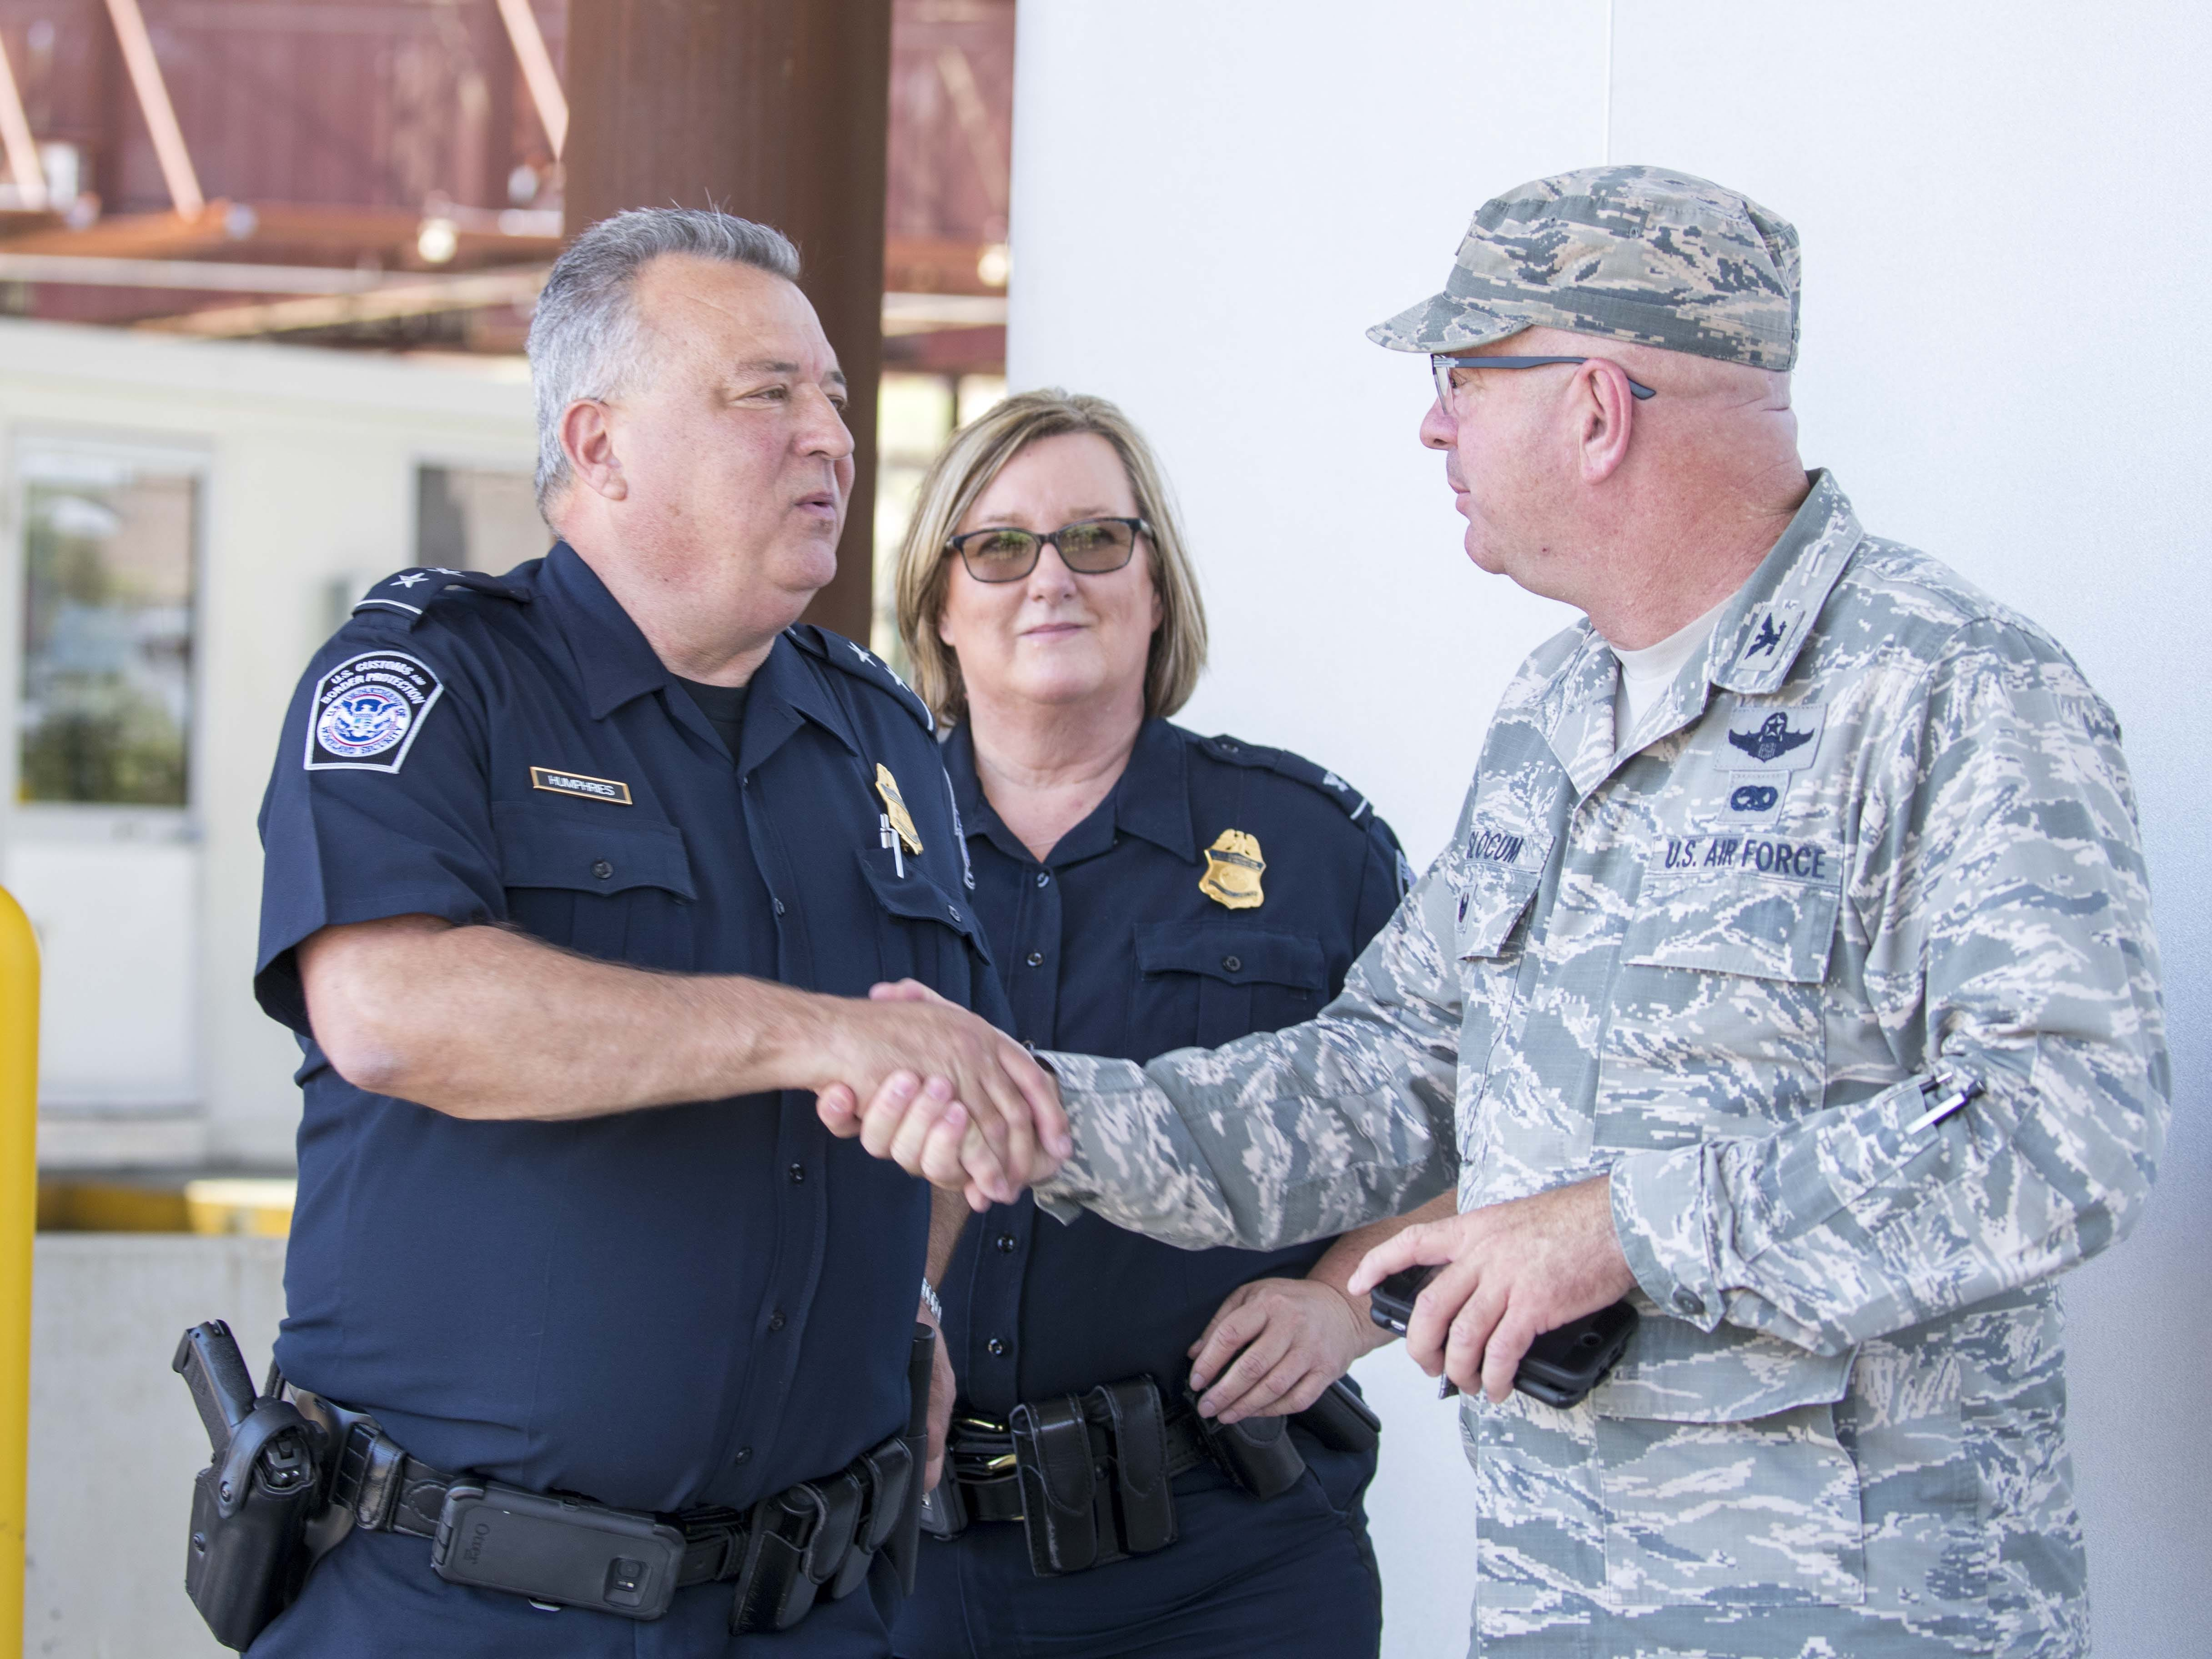 Area Port Director Michael Humphries (left) and National Guard Col. E. Hoyt Slocum, shake hands as personnel perform their Operation Guardian Support responsibilities Aug. 1, 2018, at the Port of Nogales (Mariposa Crossing) in Nogales, Arizona.